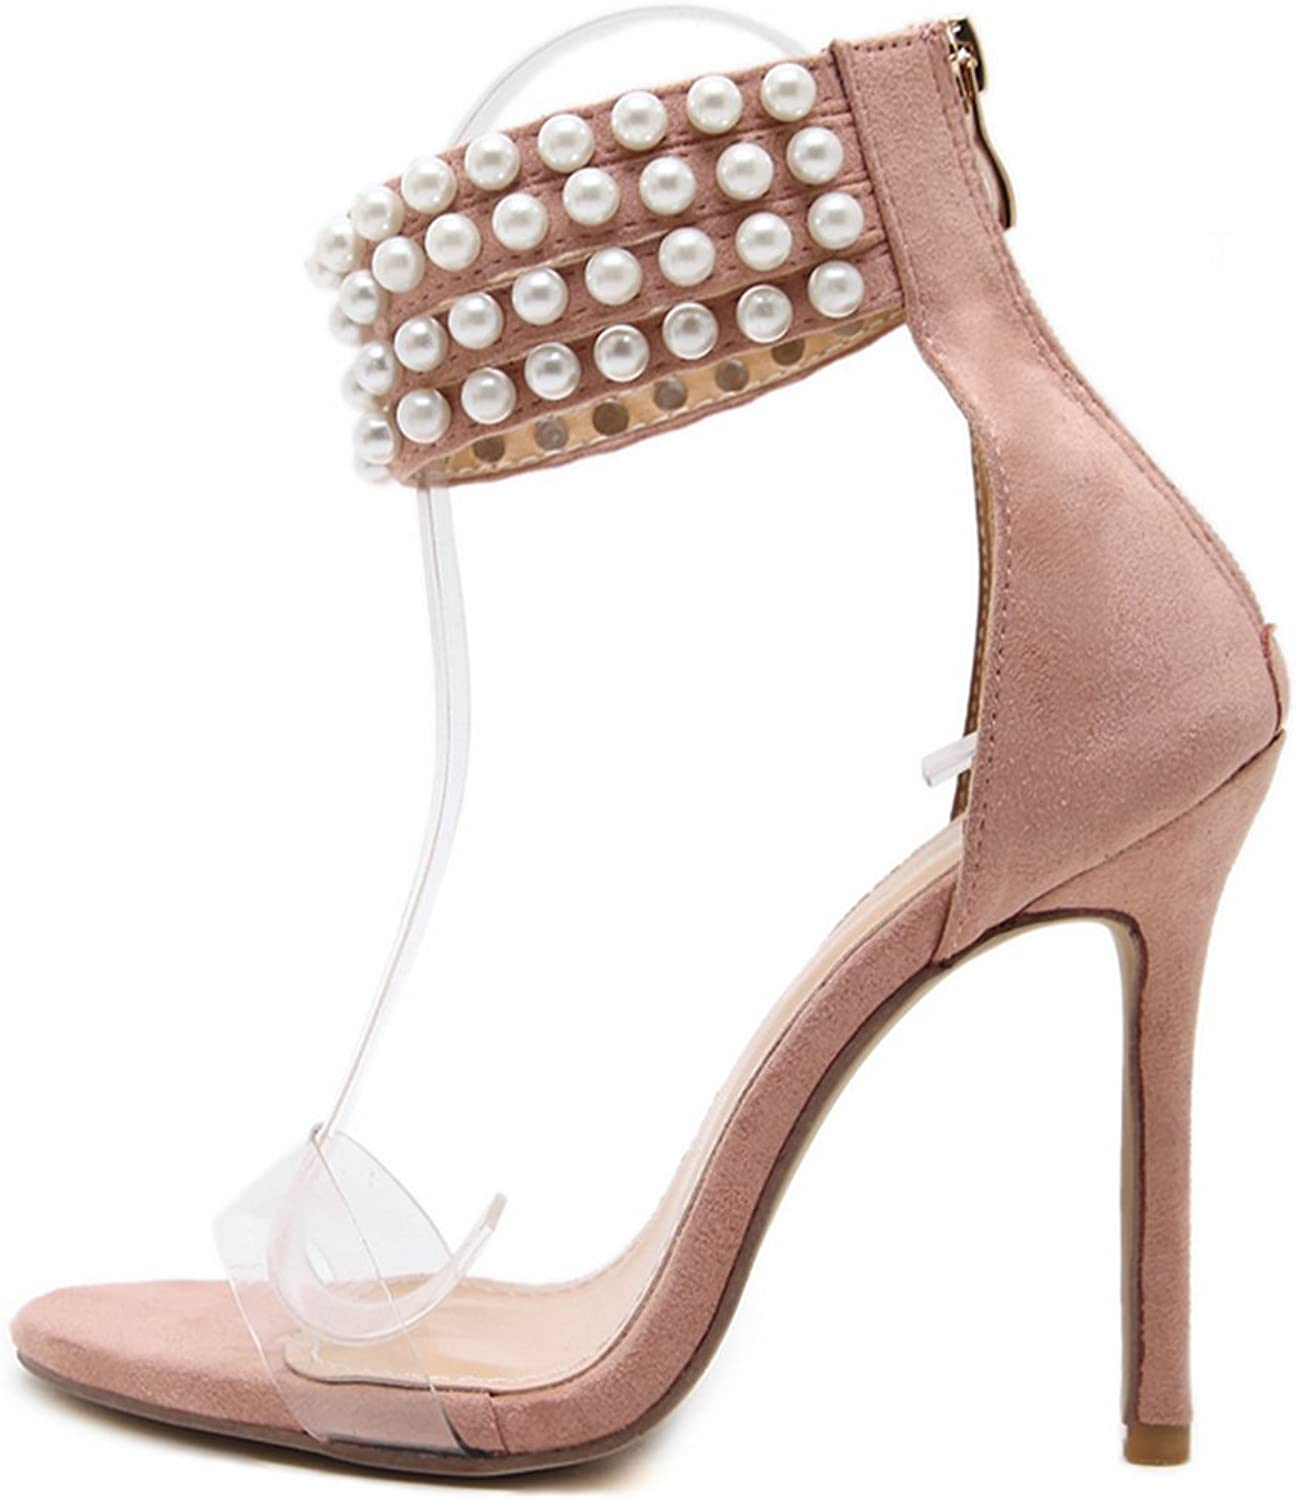 FG21ds21g Women High Heel Pumps Peep Toe Pearls Straps Evening Prom Bridal Wedding Sandals